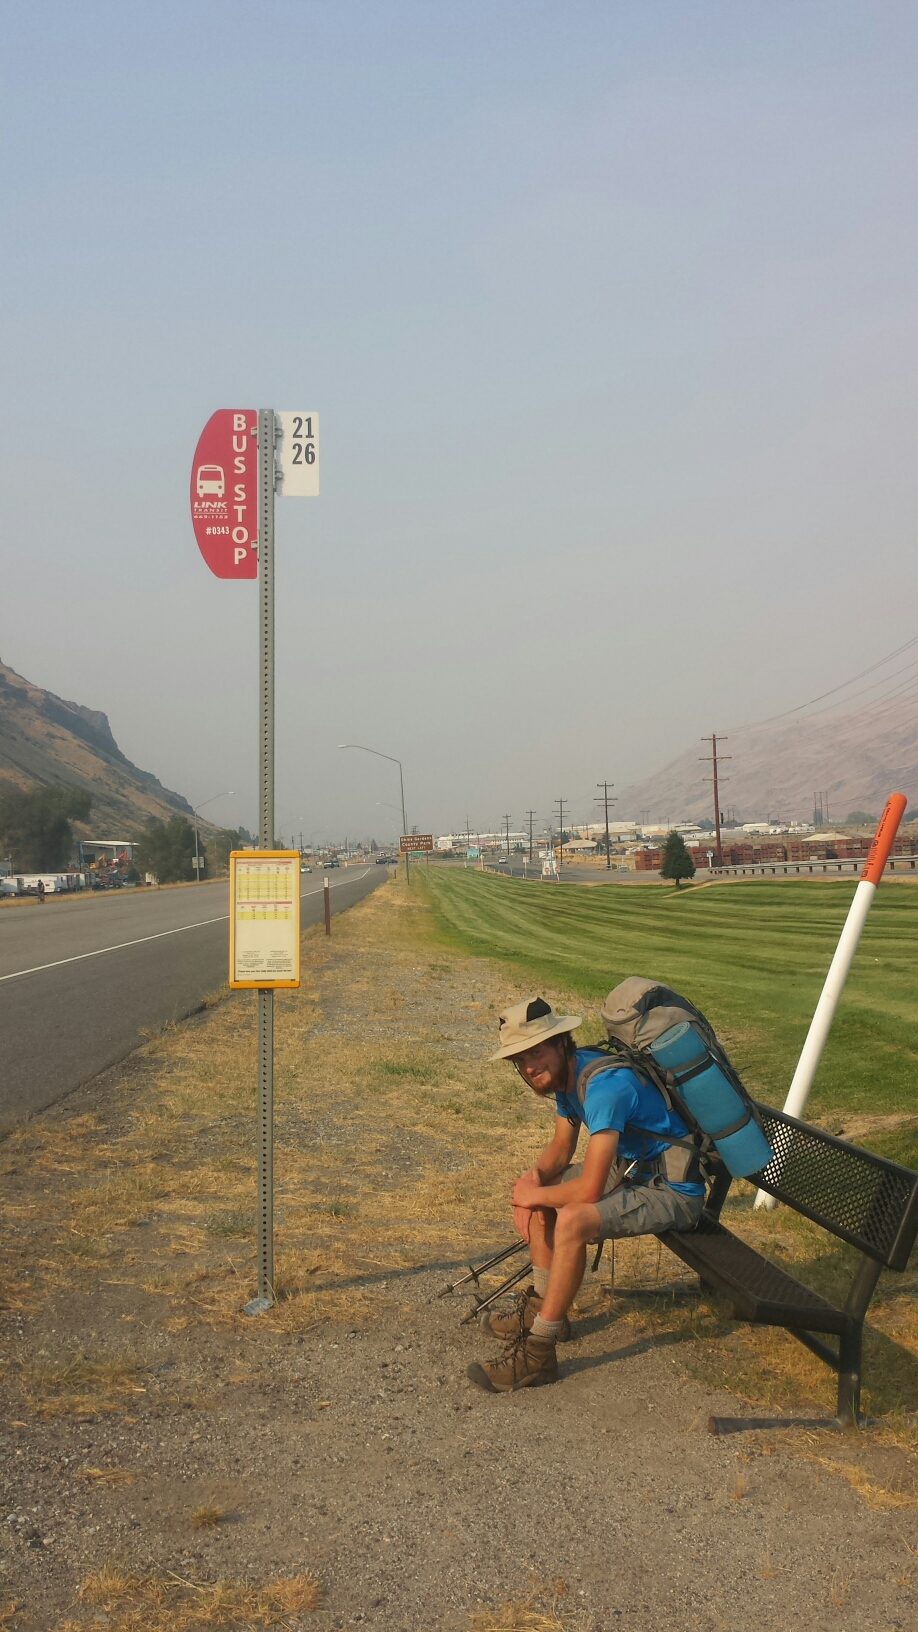 Waiting for the bus to Chelan